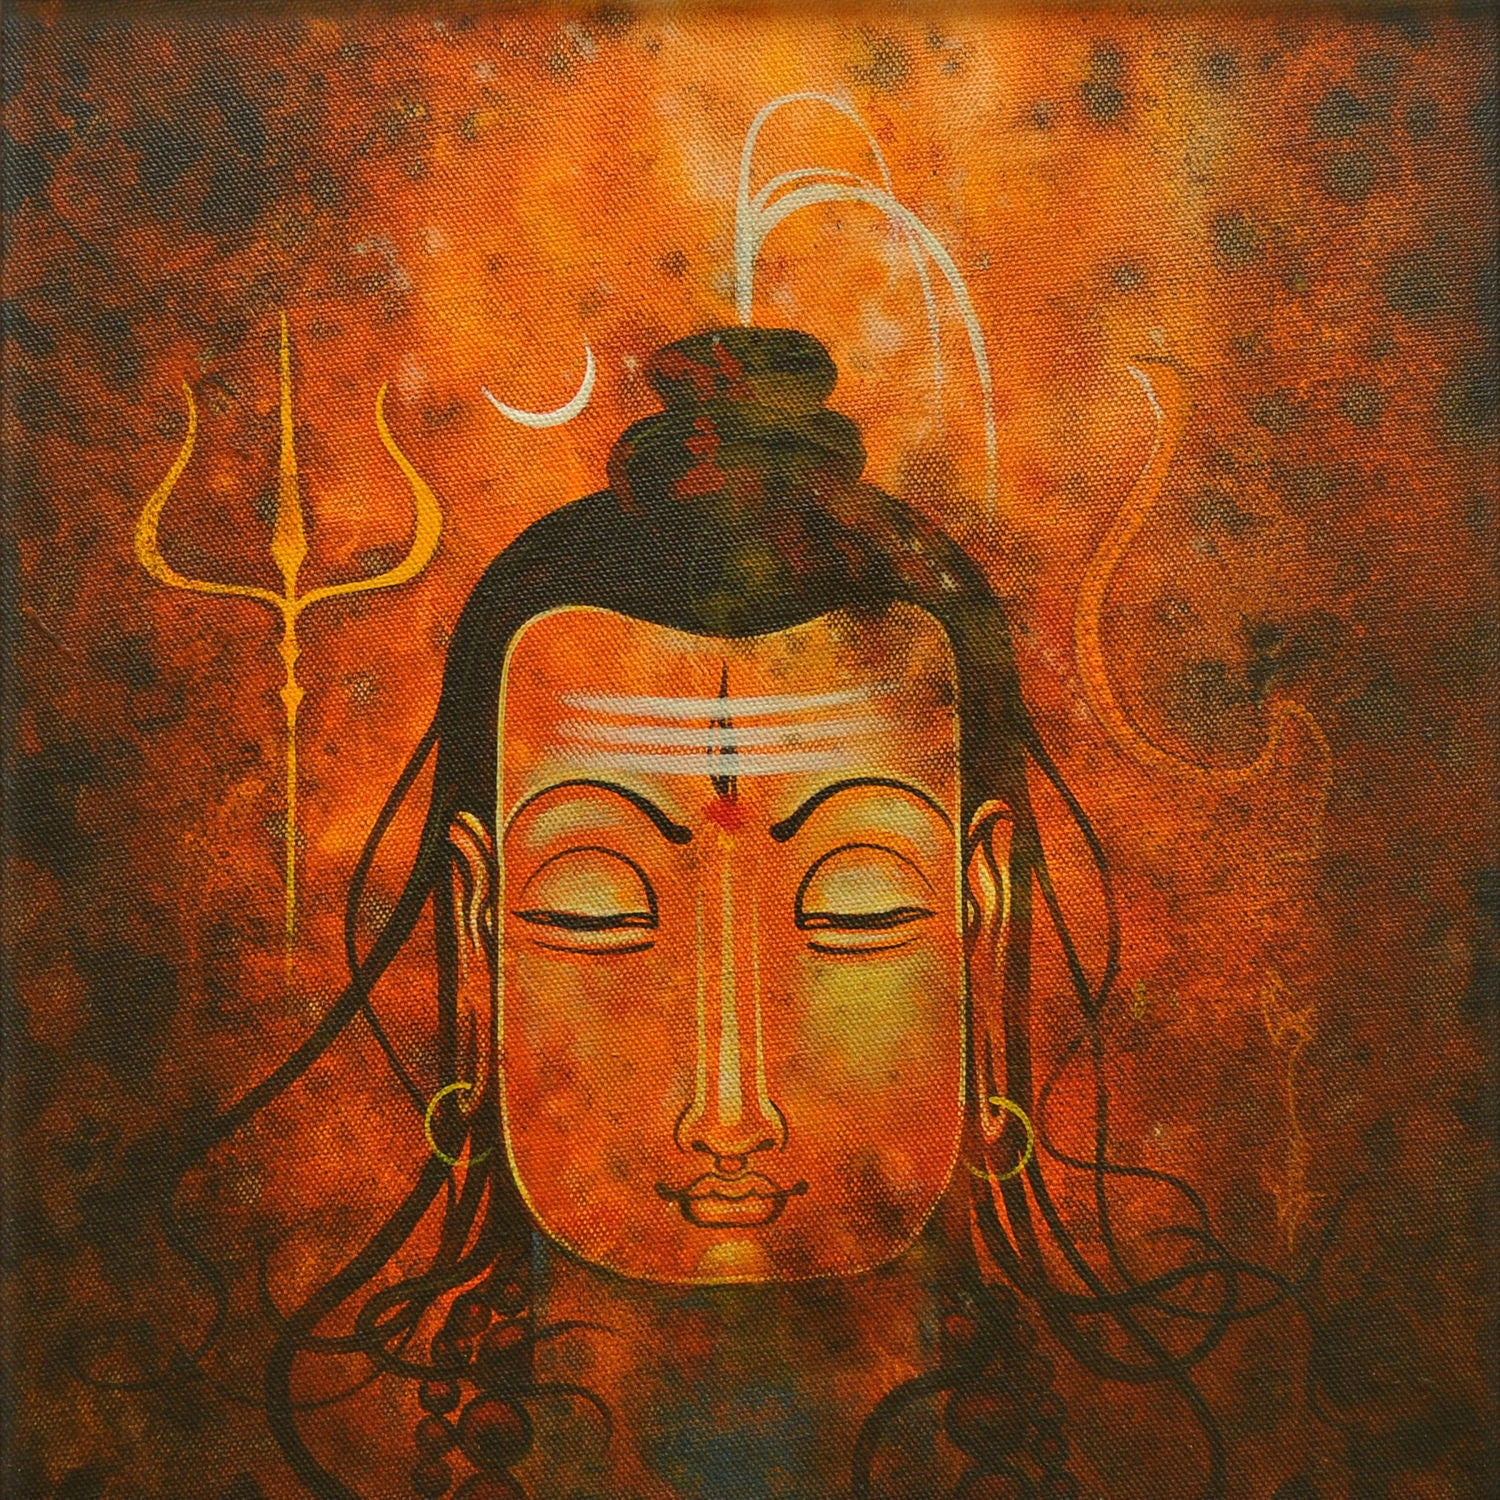 Shiva Collection | Buy Posters, Frames, Canvas, Digital Art & Large Size Prints